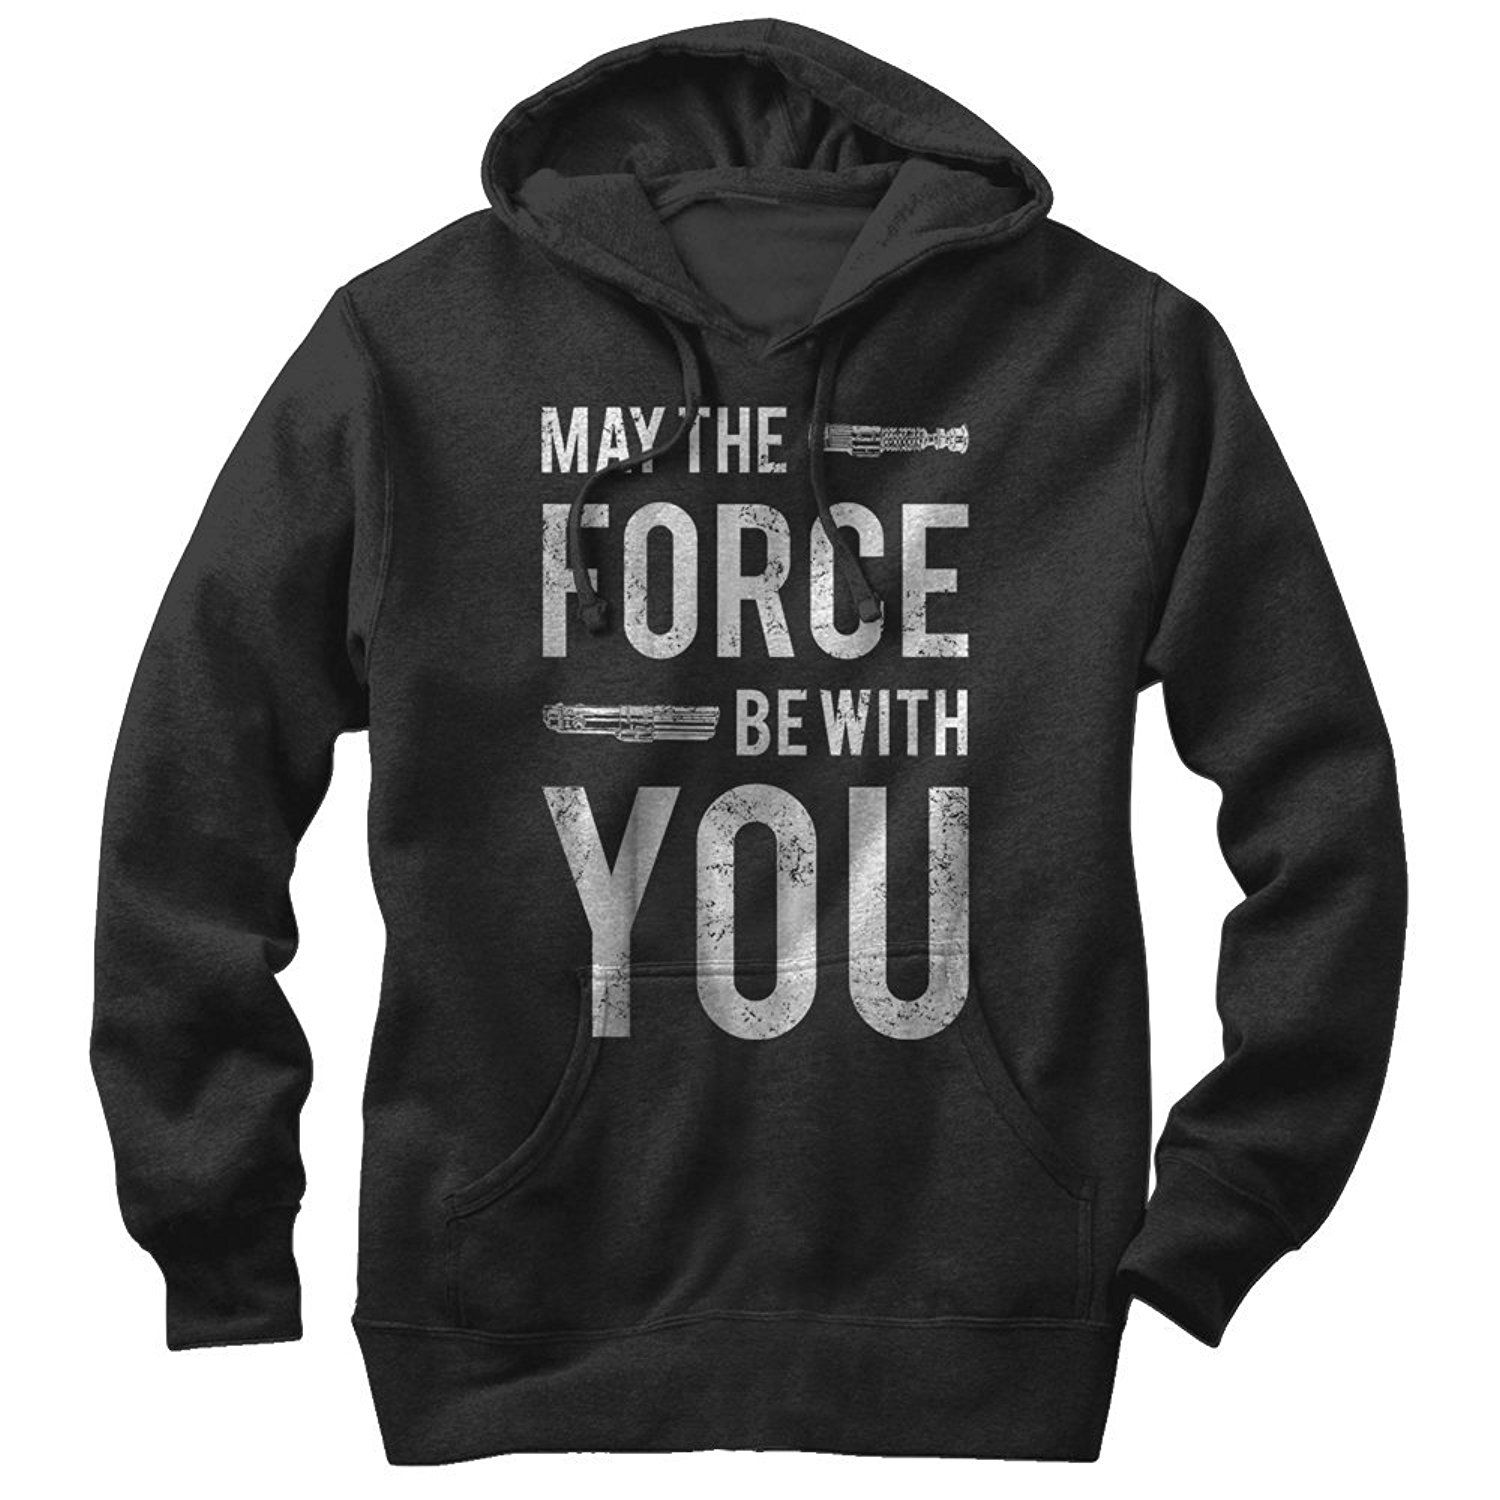 ab8bfada Best Star Wars Hoodie - The Coolest Star Wars Hoodies 2018 | Star ...